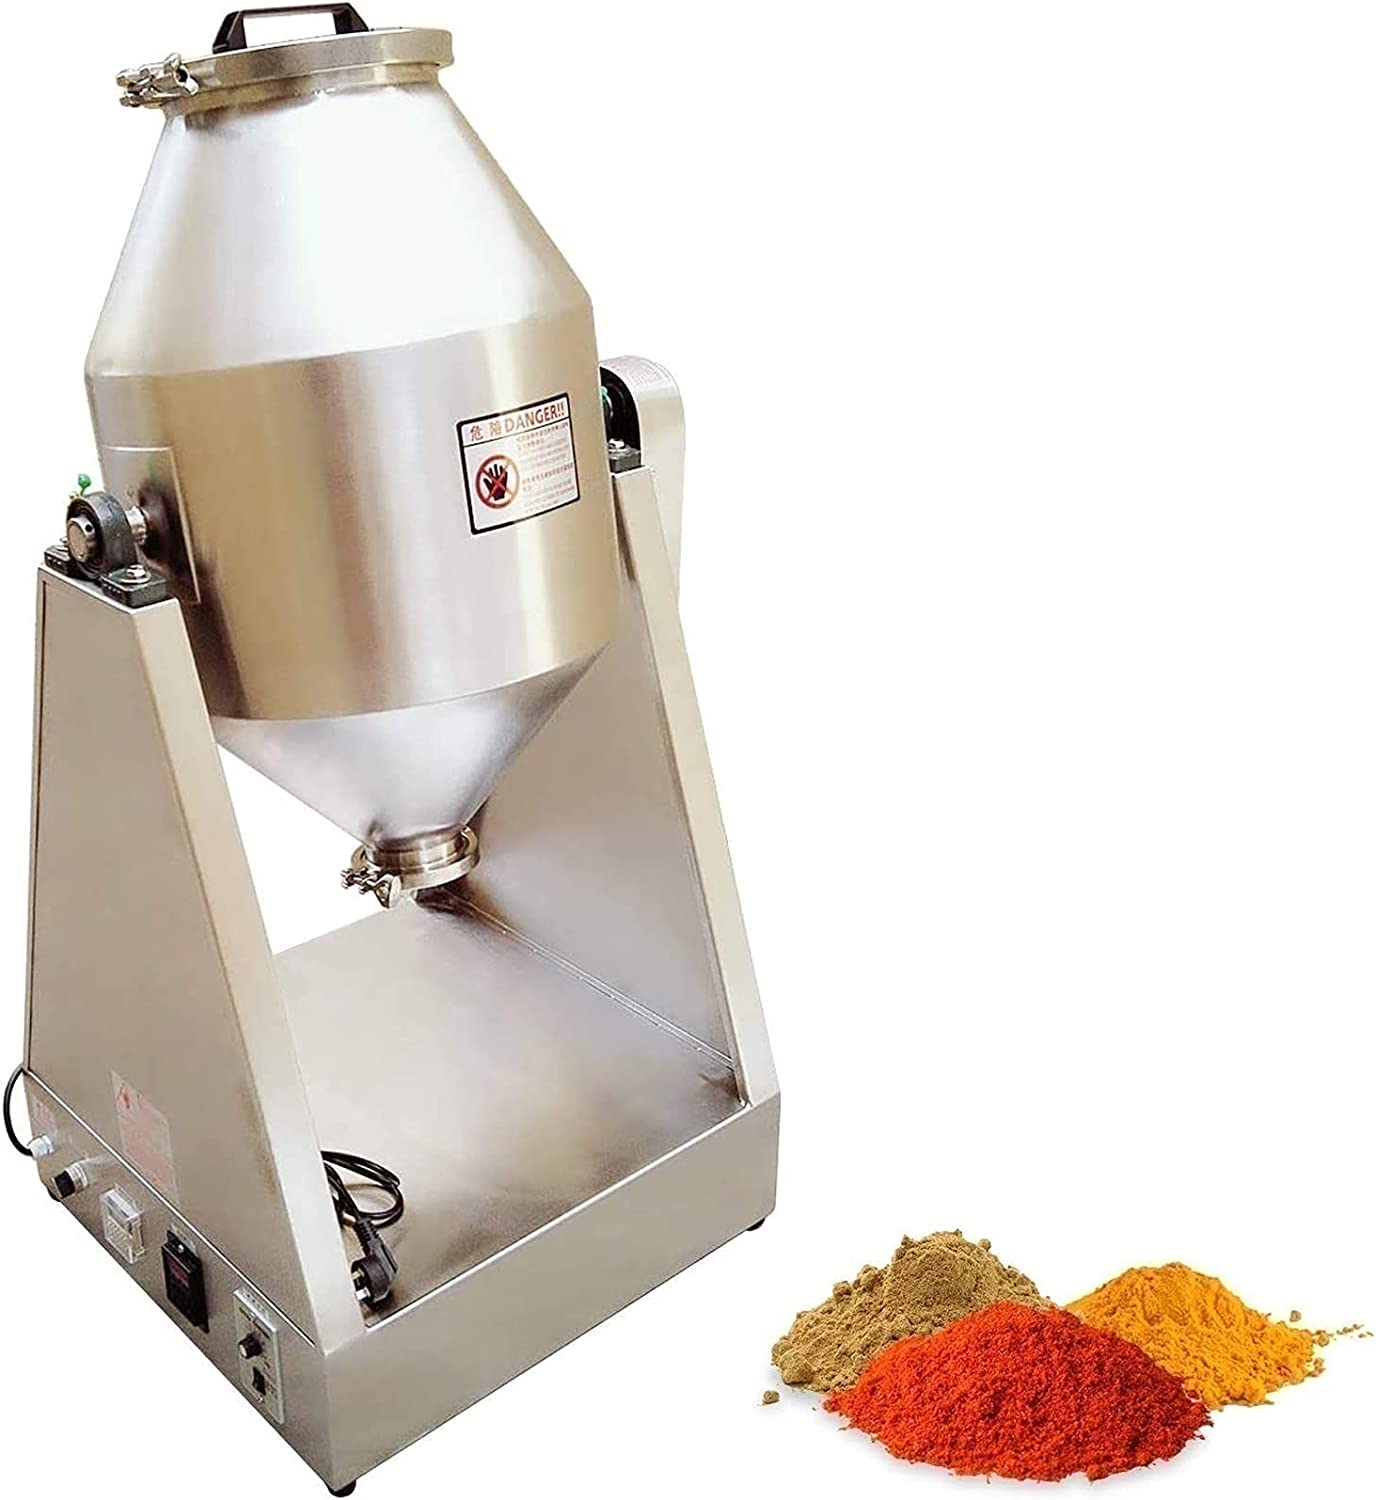 HSOSK Small Type Powder Mixer Blender Machine Chicago Mall Stirring Mixing shopping fo